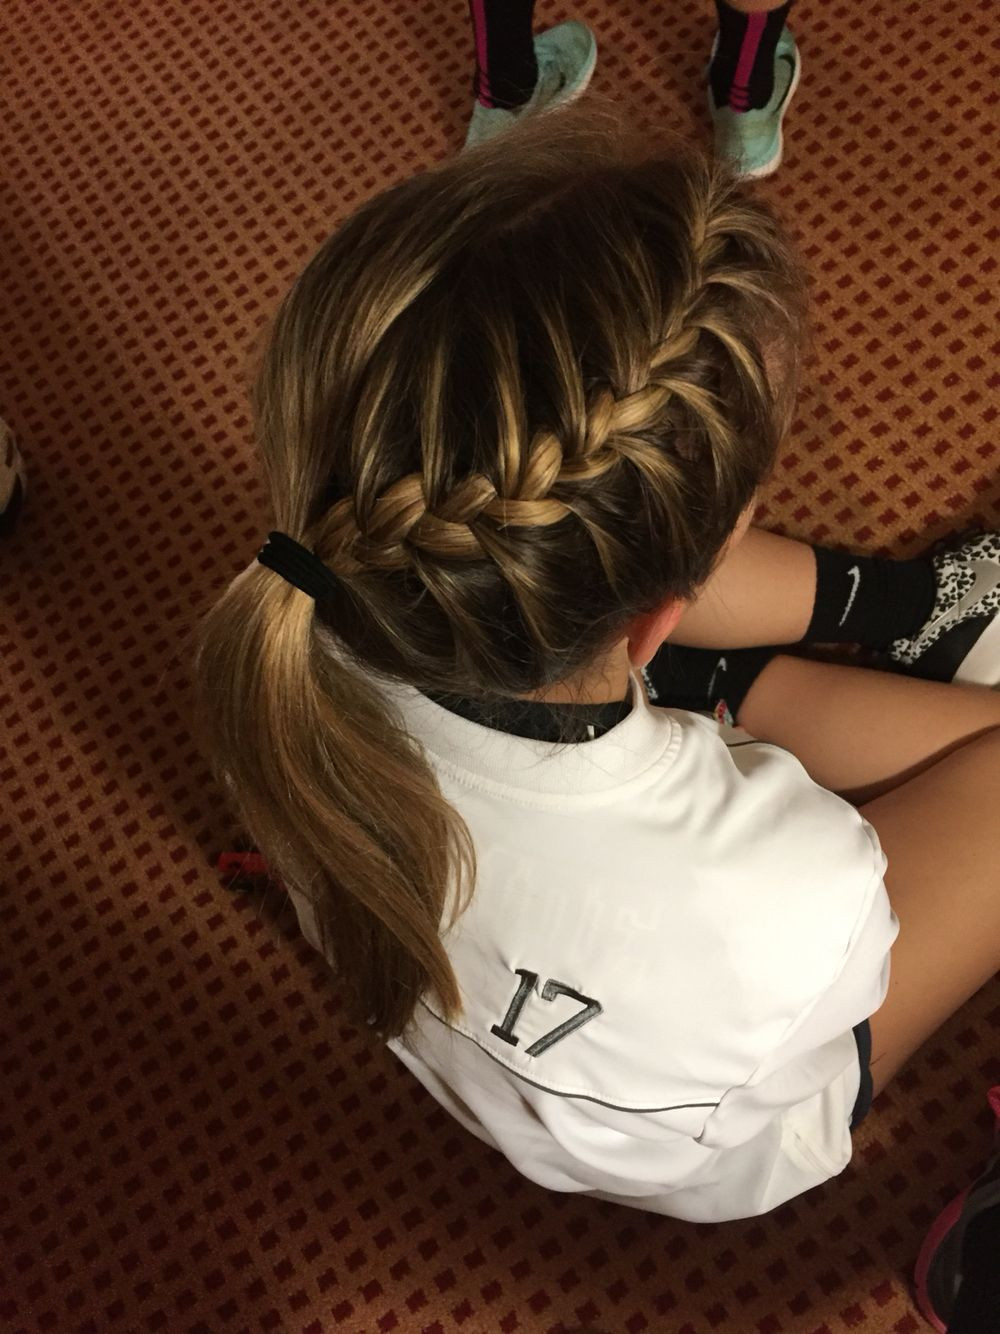 Best ideas about Cute Softball Hairstyles . Save or Pin Perfect braid for a volleyball game Hair Now.